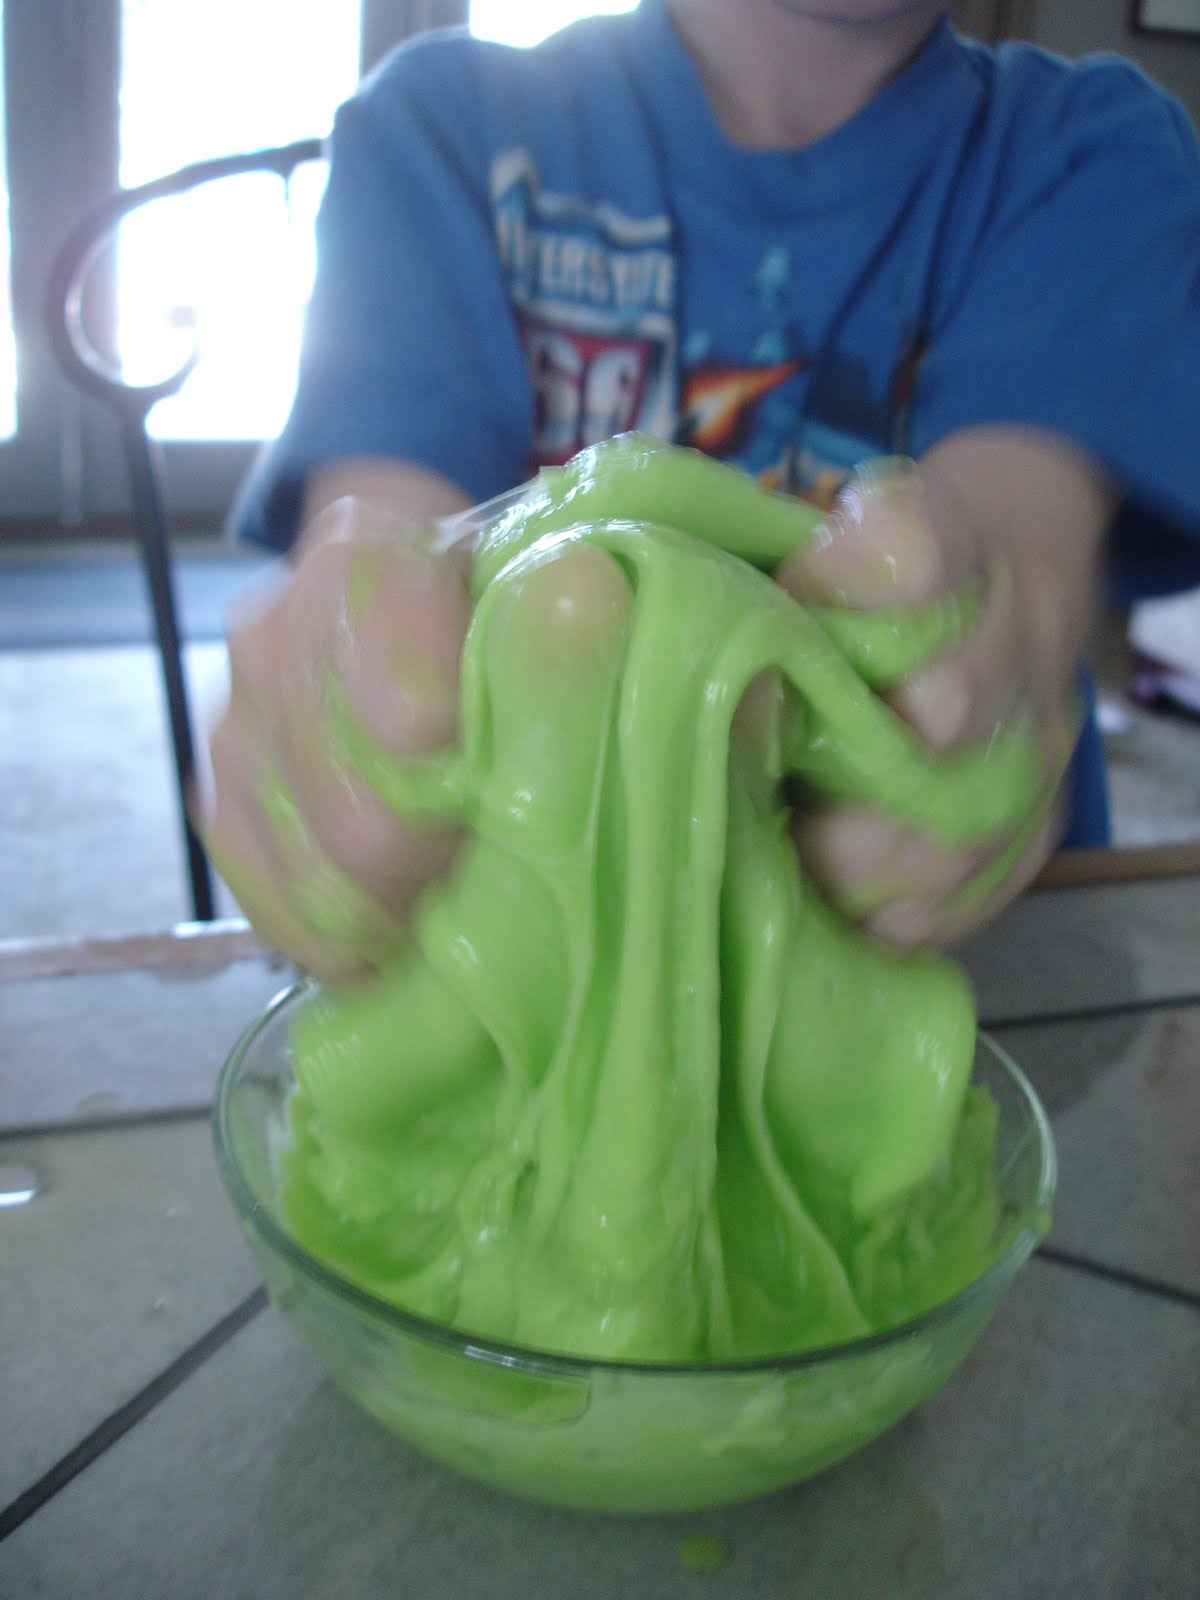 How To Make Slime With Food Coloring And Water